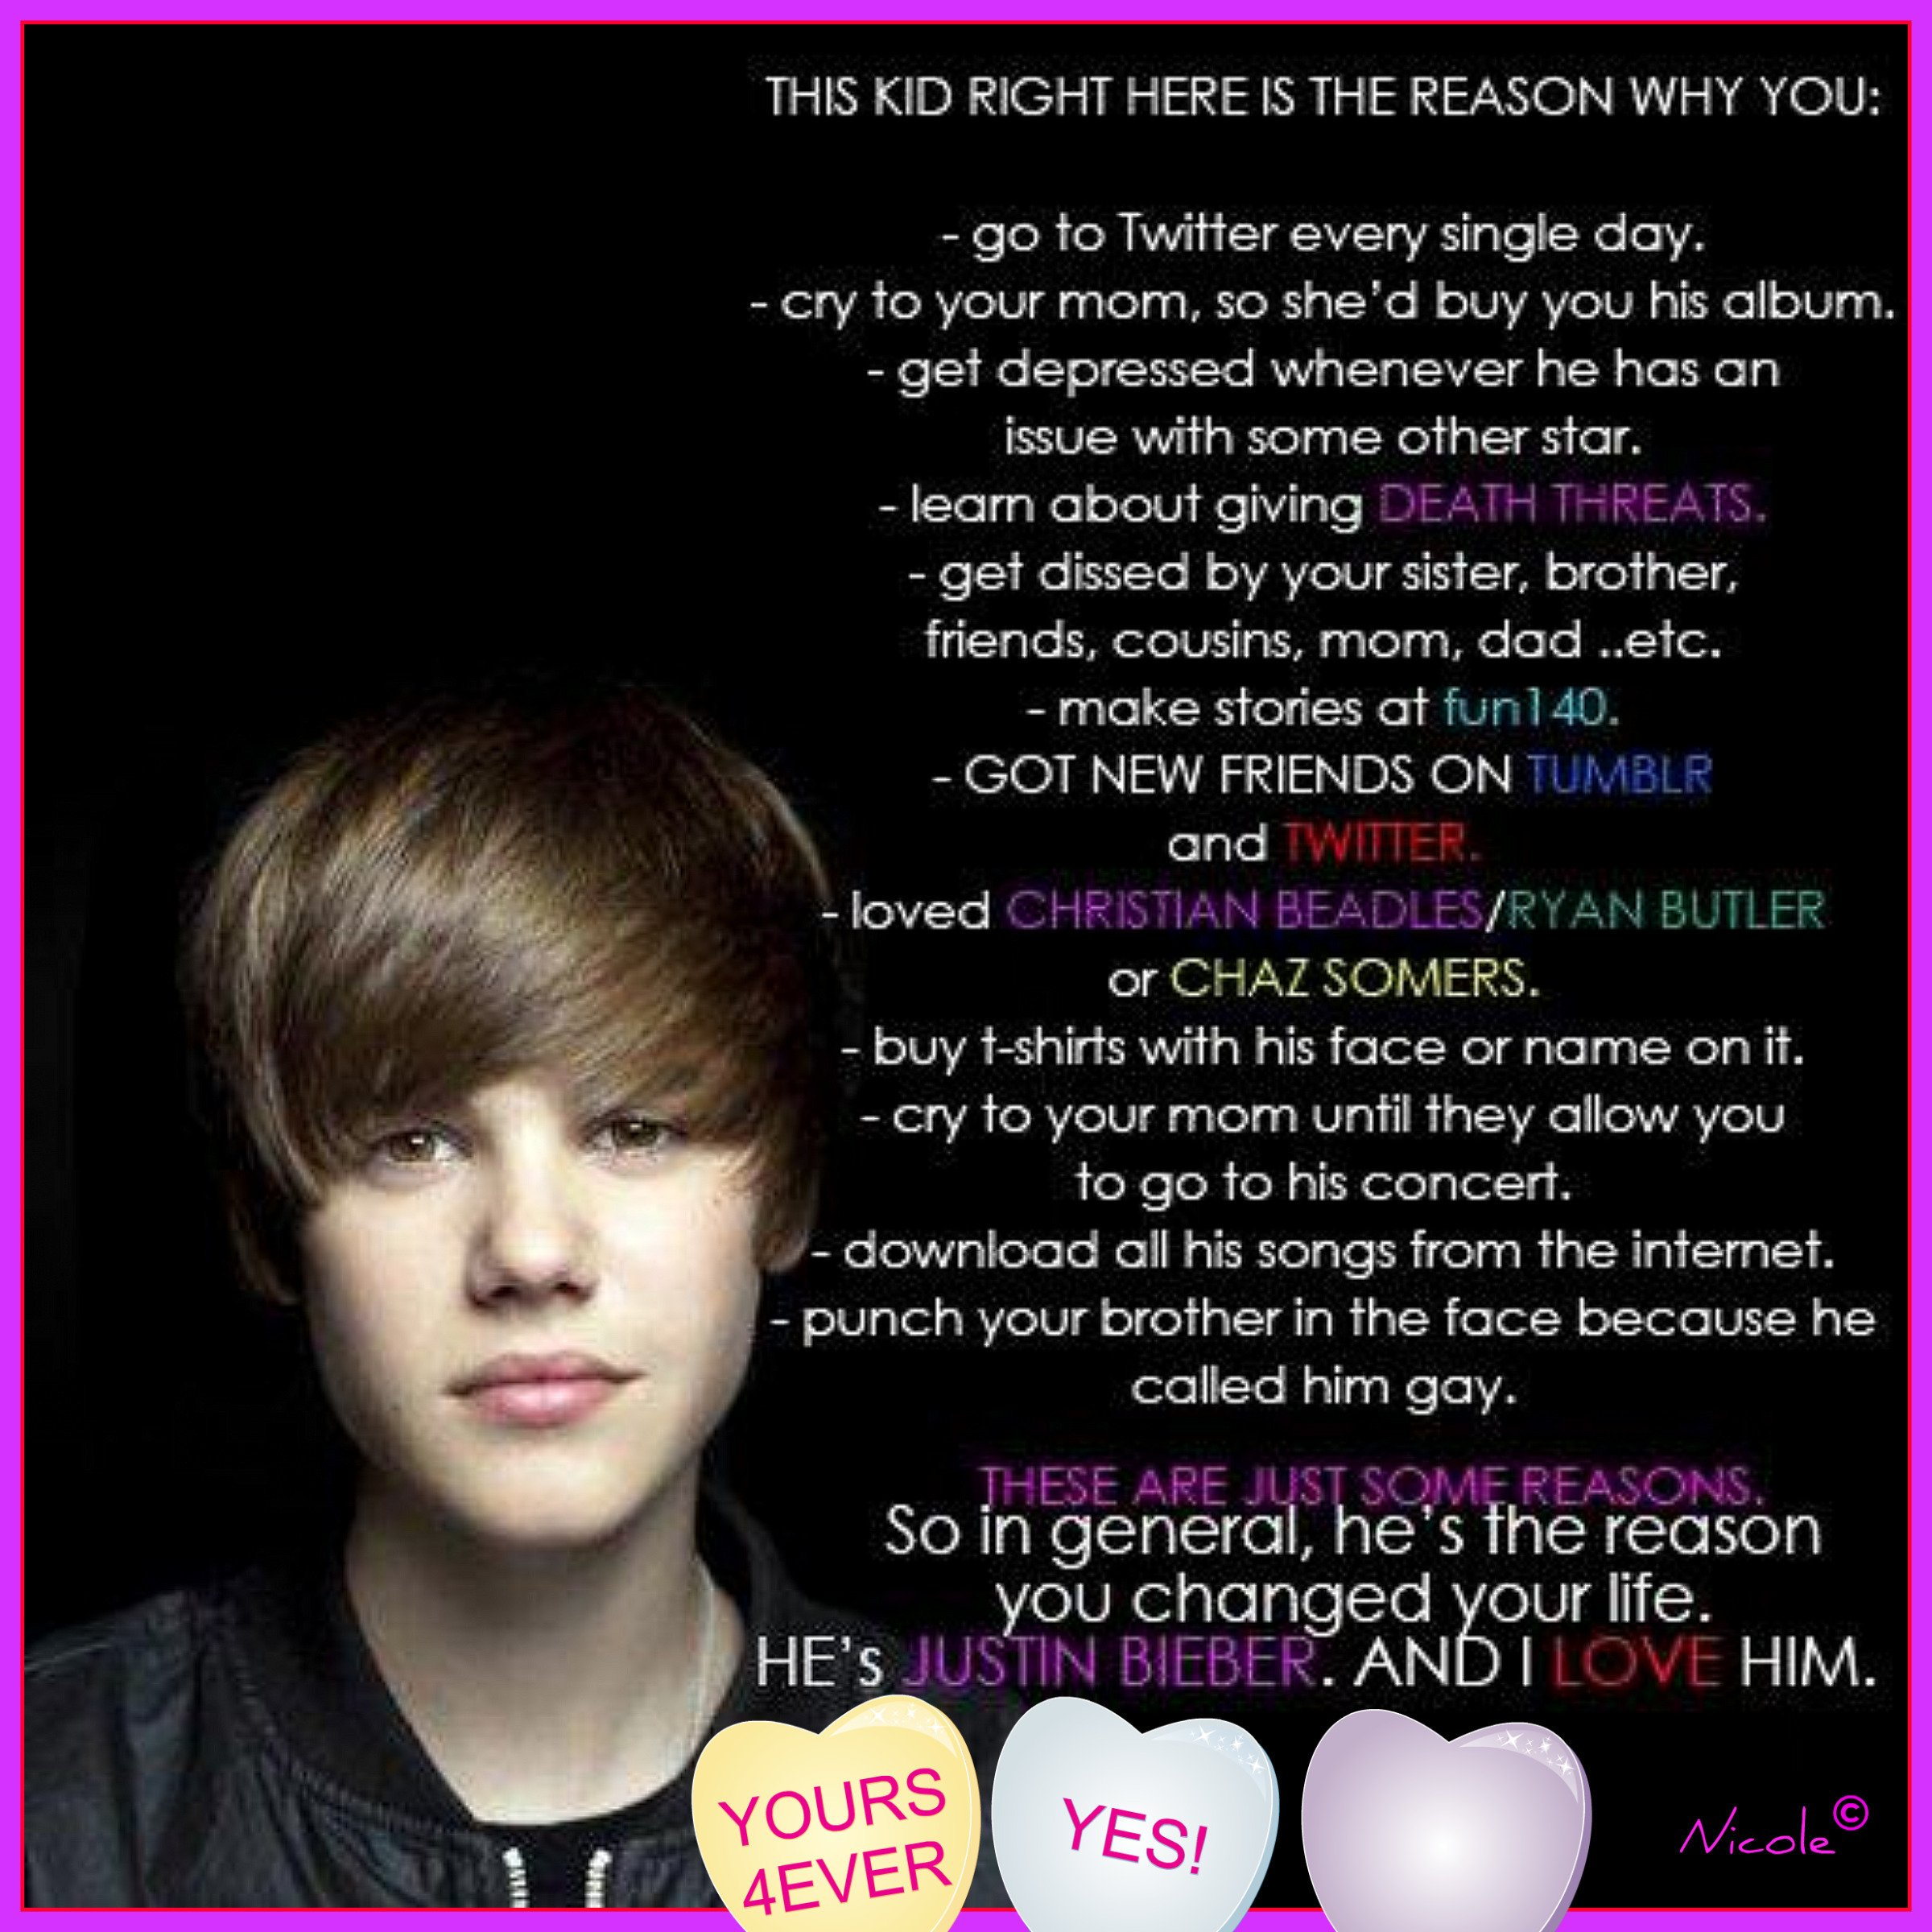 Love Yourself Wallpaper Justin Bieber : I Love Justin Bieber Wallpaper - WallpaperSafari